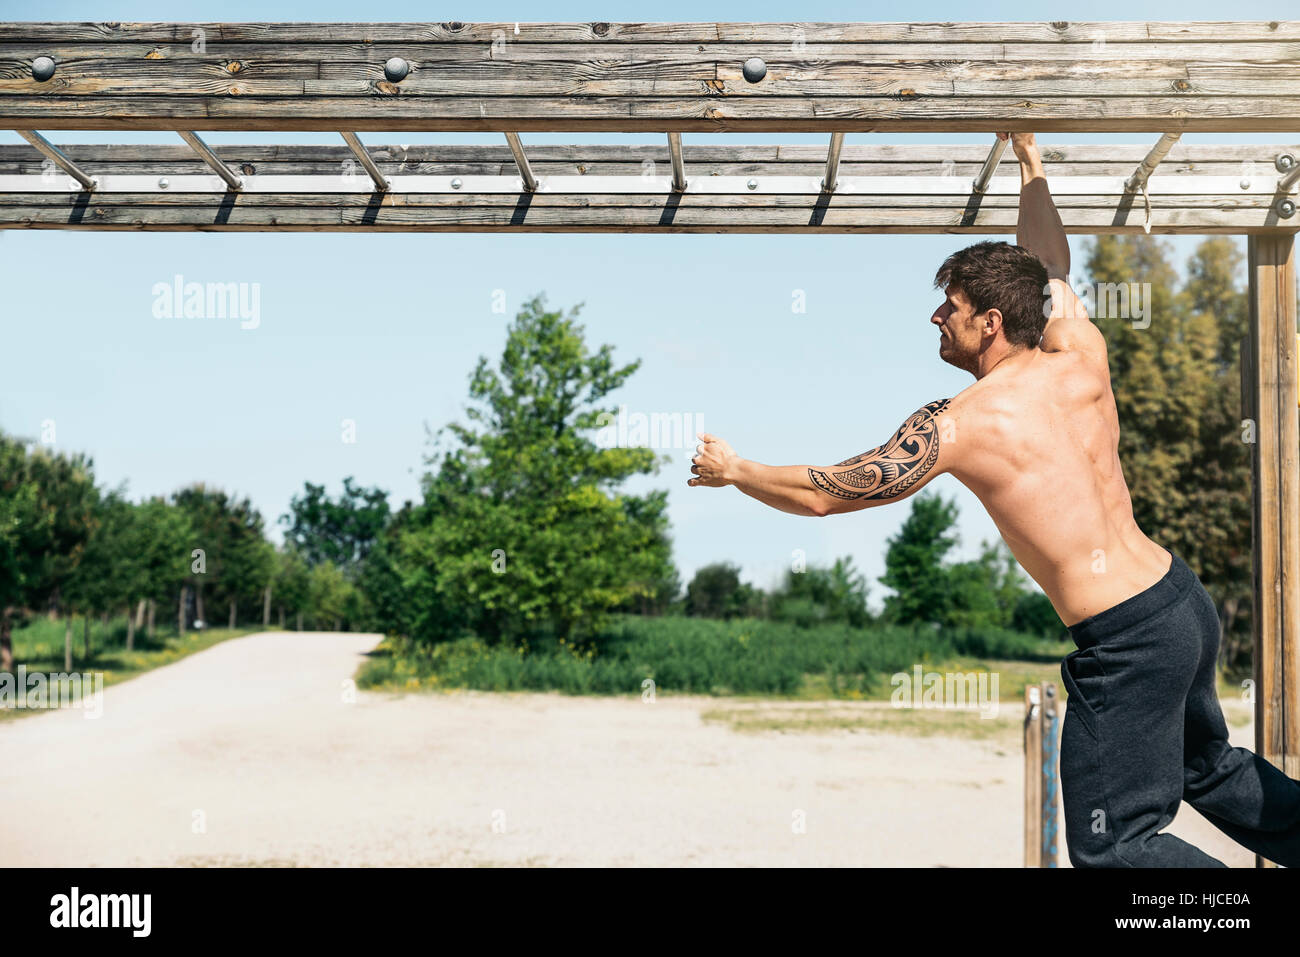 Fitness, workout, sport, lifestyle concept. Man training fitness in the sport area. - Stock Image